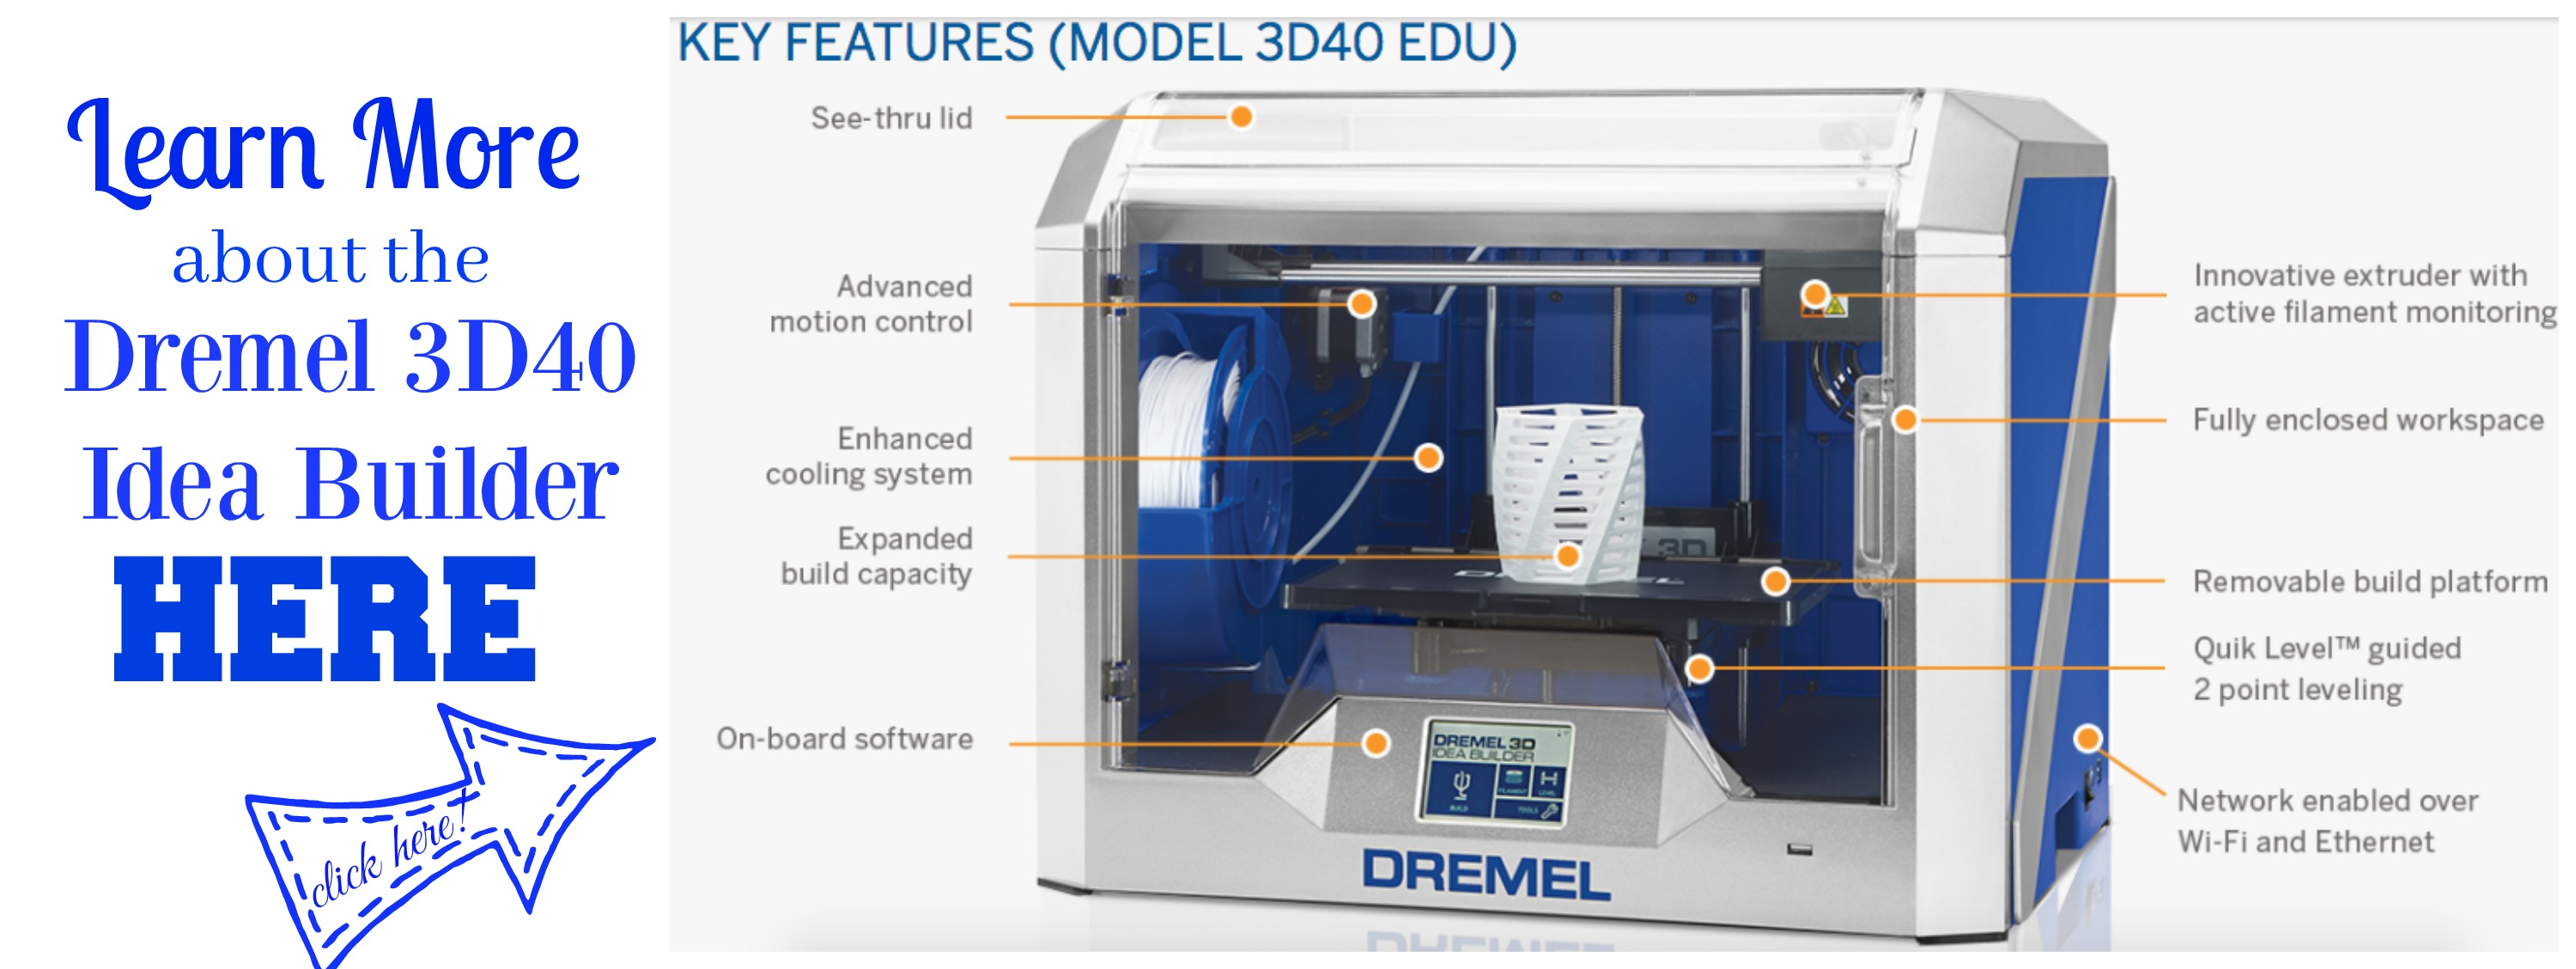 Dremel 3D40 Idea Builder information details